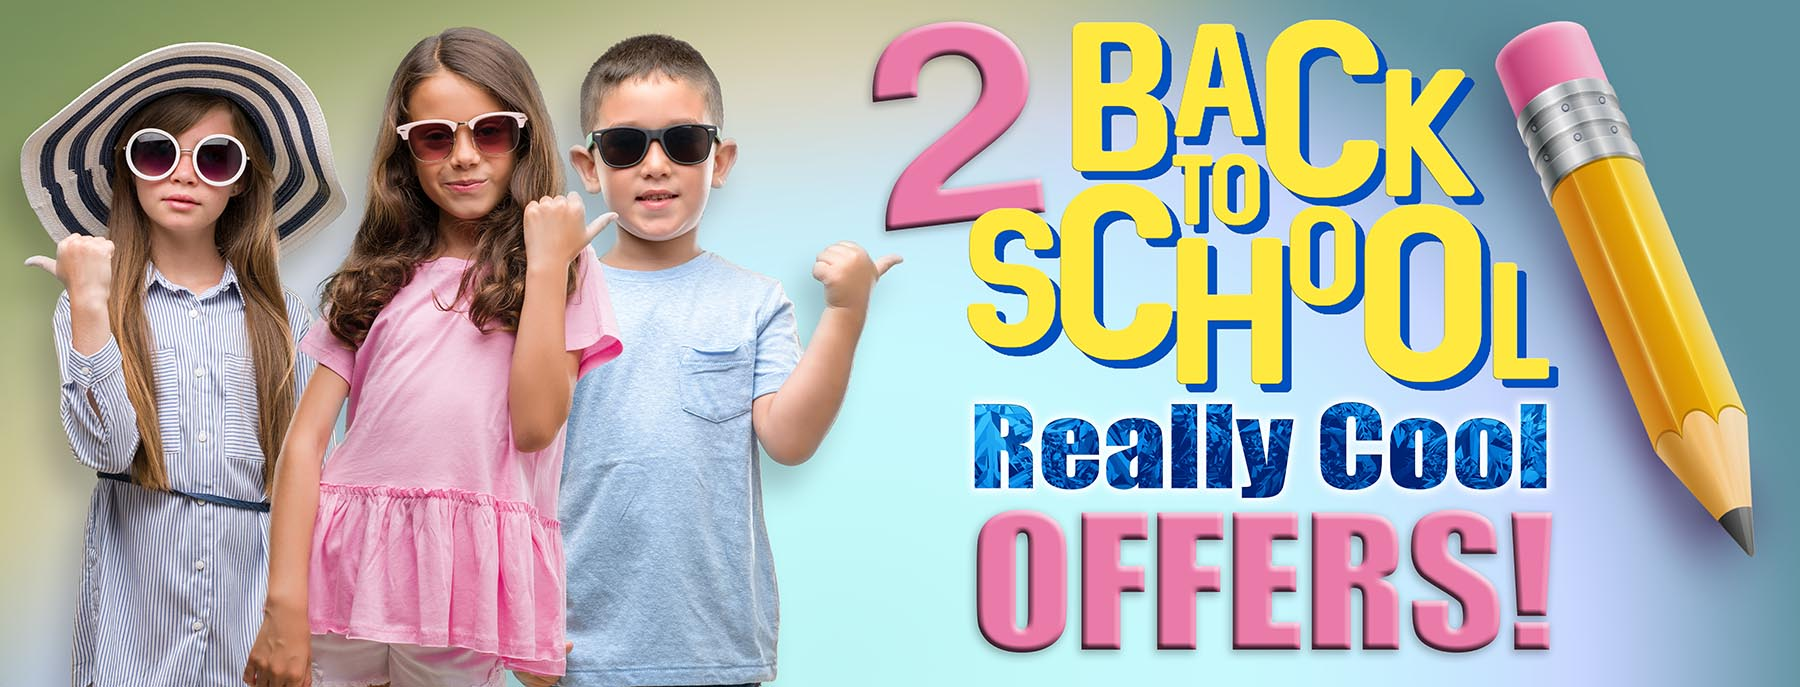 Back to School banner1